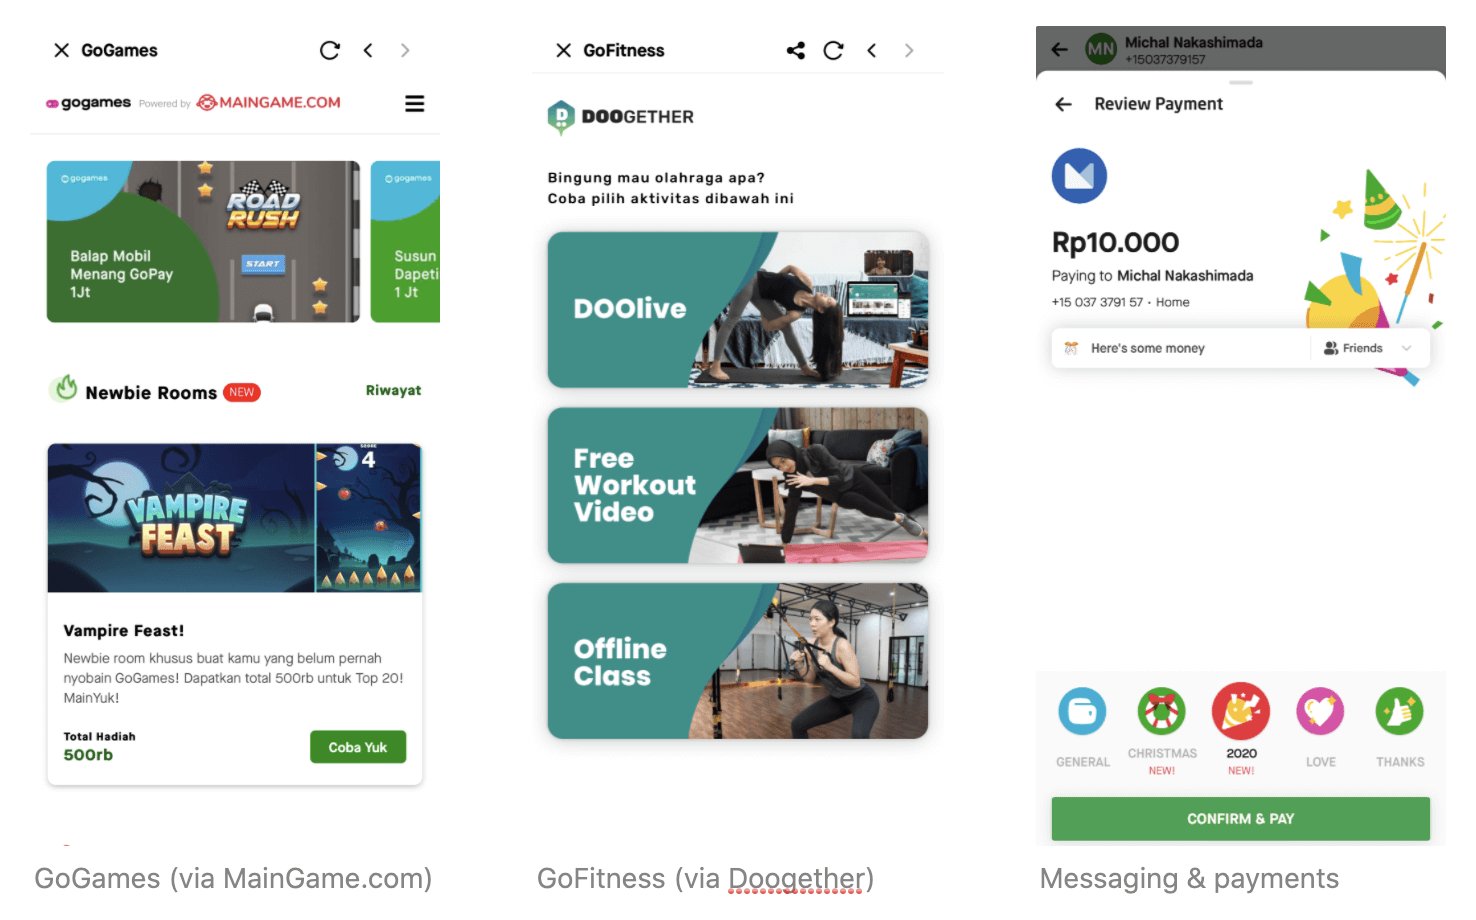 Three screenshots of the Gojek app showing additional services: 1) GoGames (via partnership with MainGames.com), 2) GoFitness (via partnership with Doogether and 3) in-app messaging which allows for payments through the messaging interface